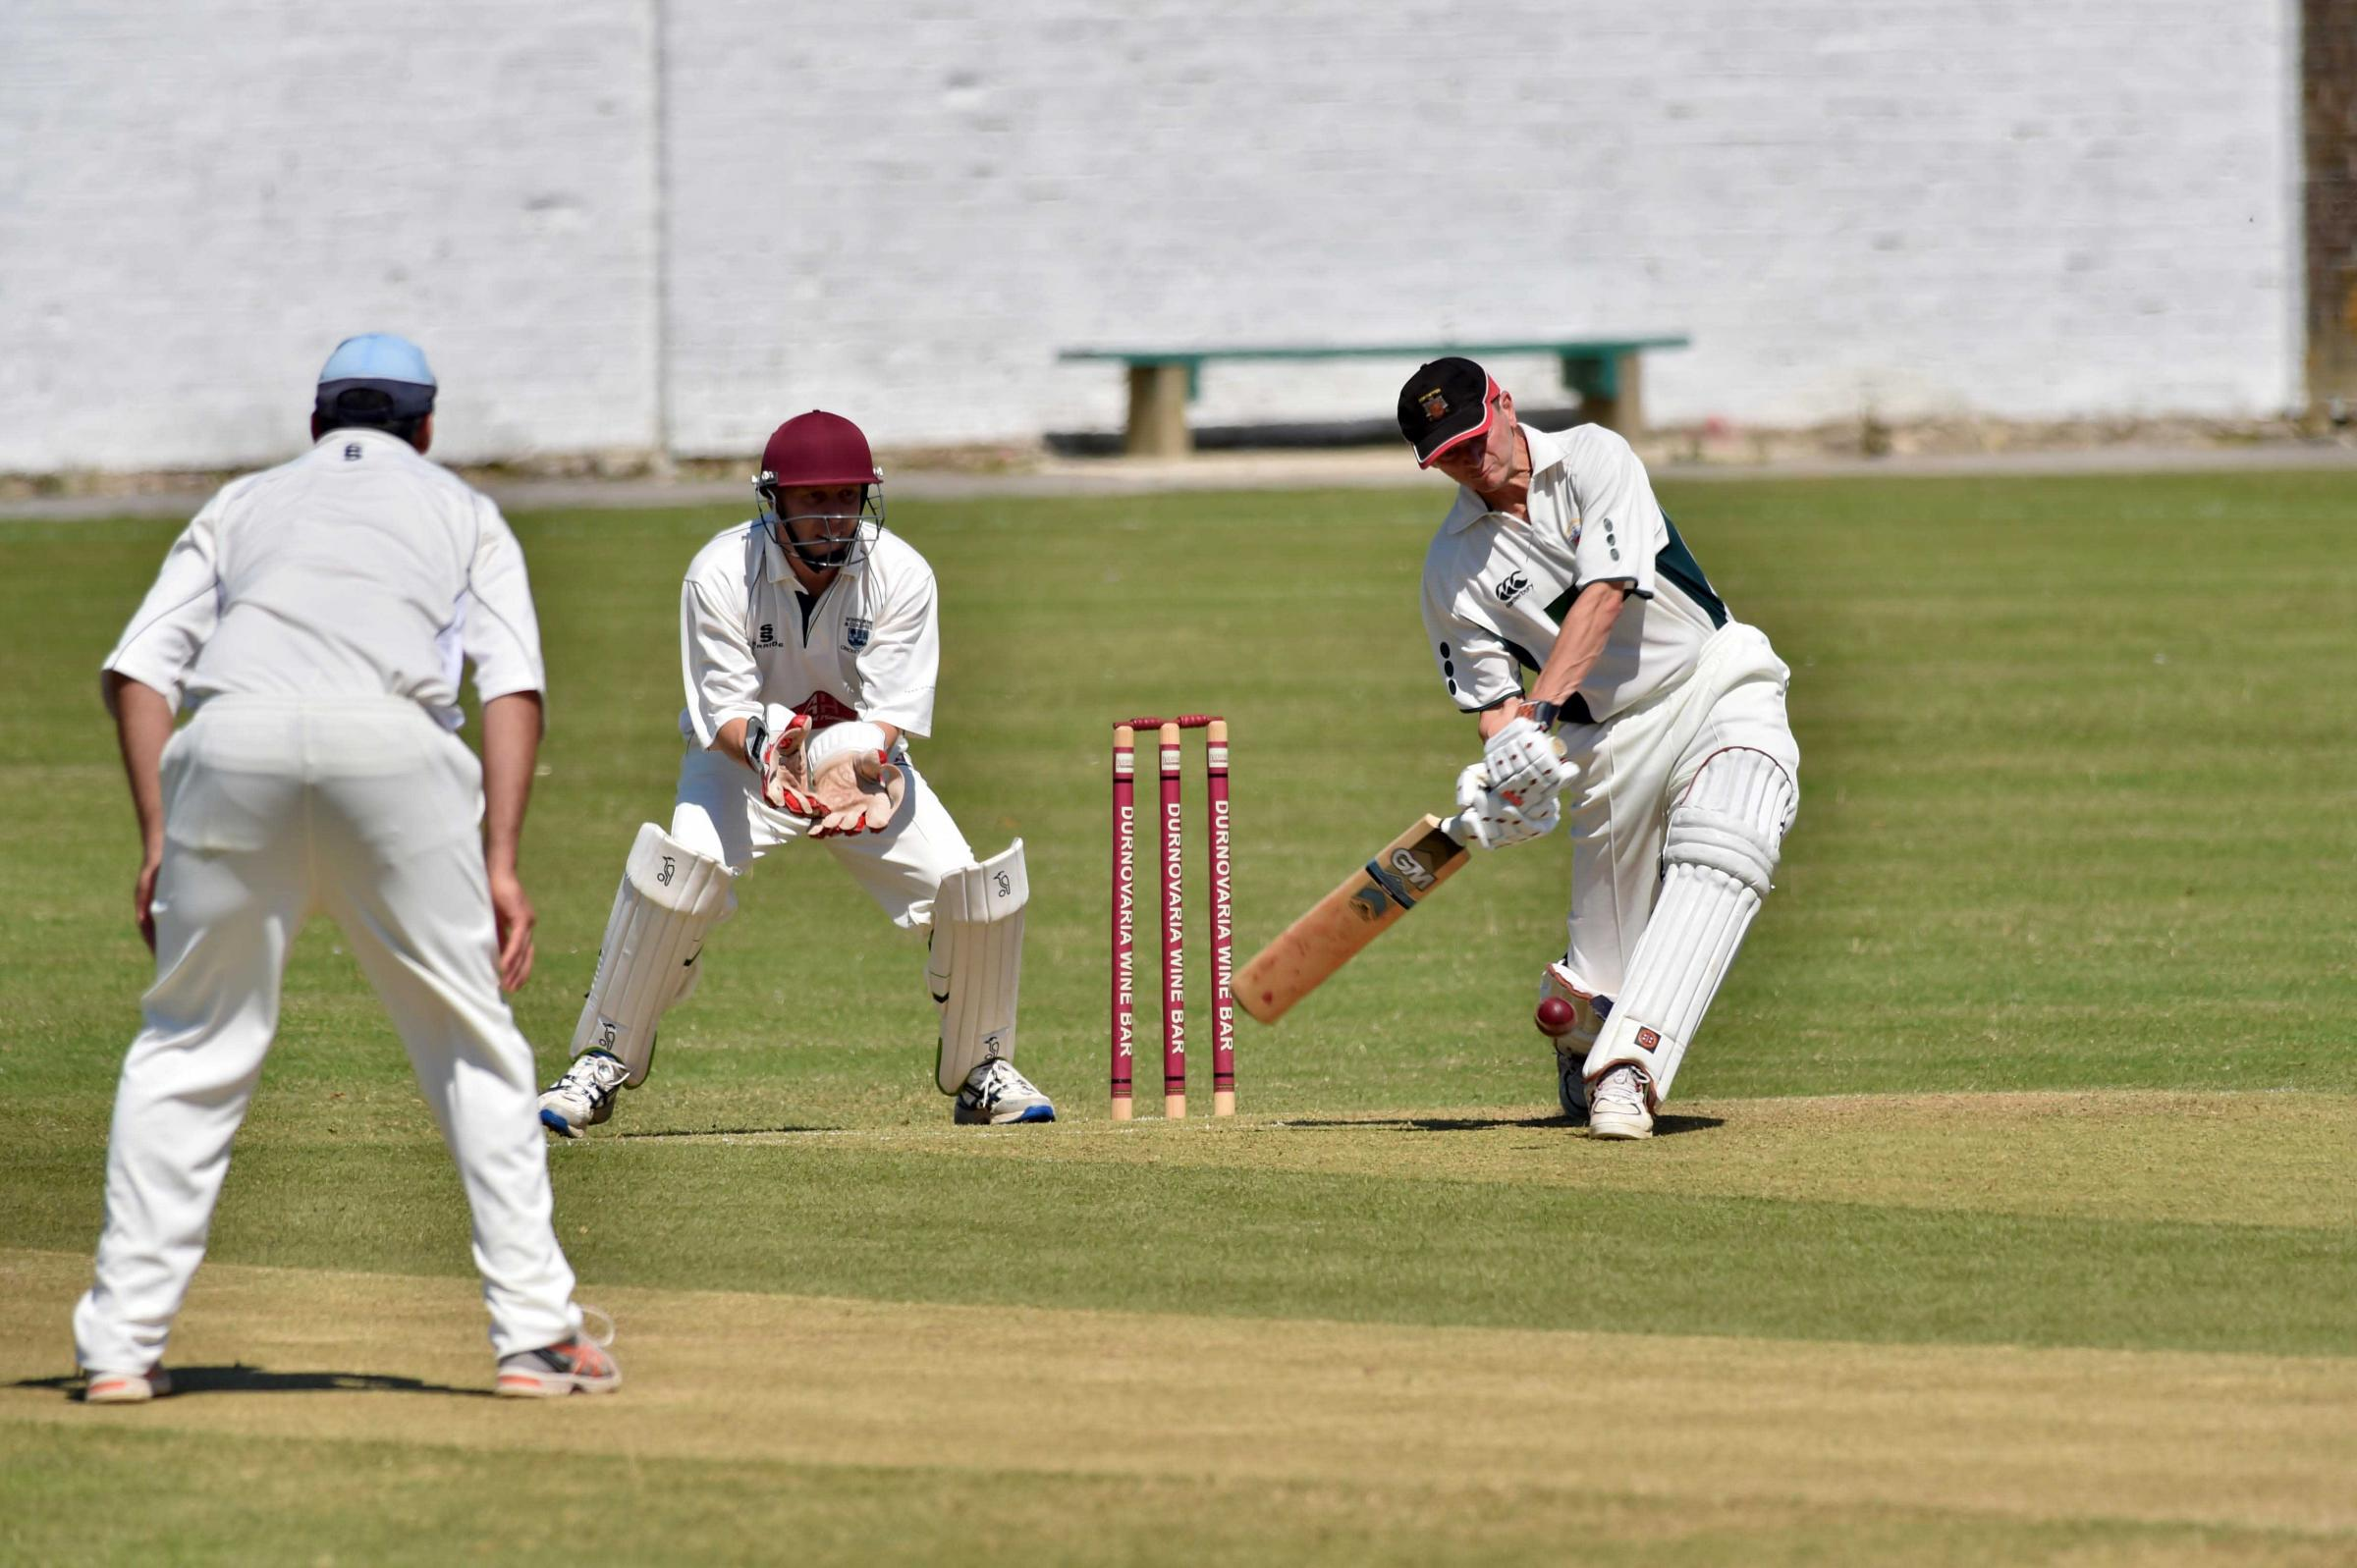 UNBEATEN: Mike Peak, right, hit 45 for Dorchester at Swanage 		         Picture: GRAHAM HUNT/HG13353